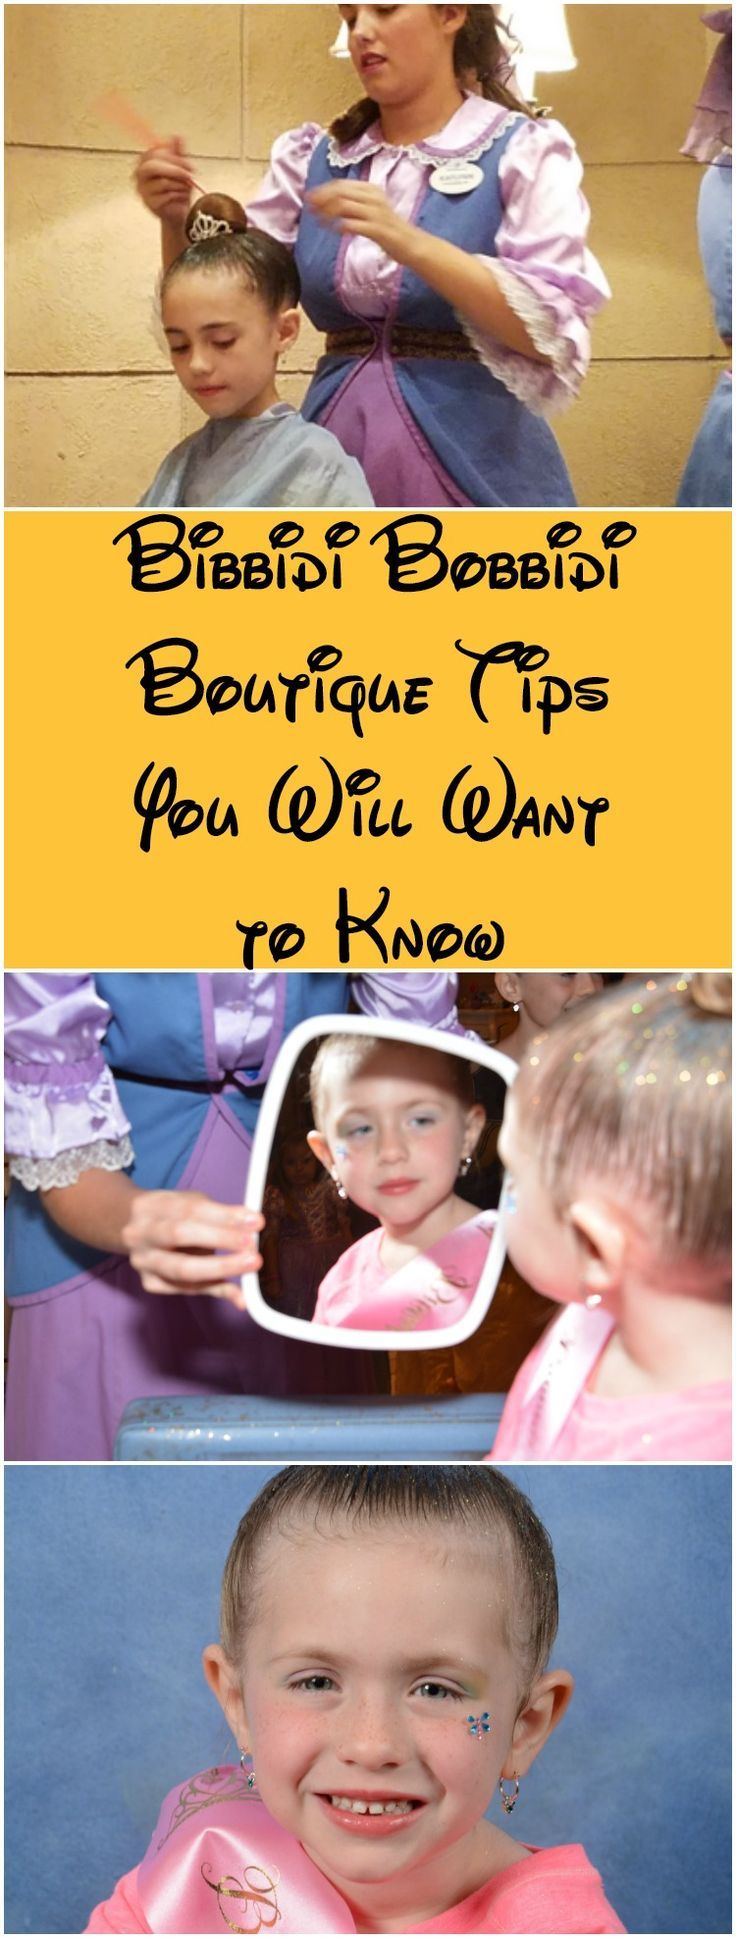 Bibbidi Bobbidi Boutique Tips You Will Want To Know With Images